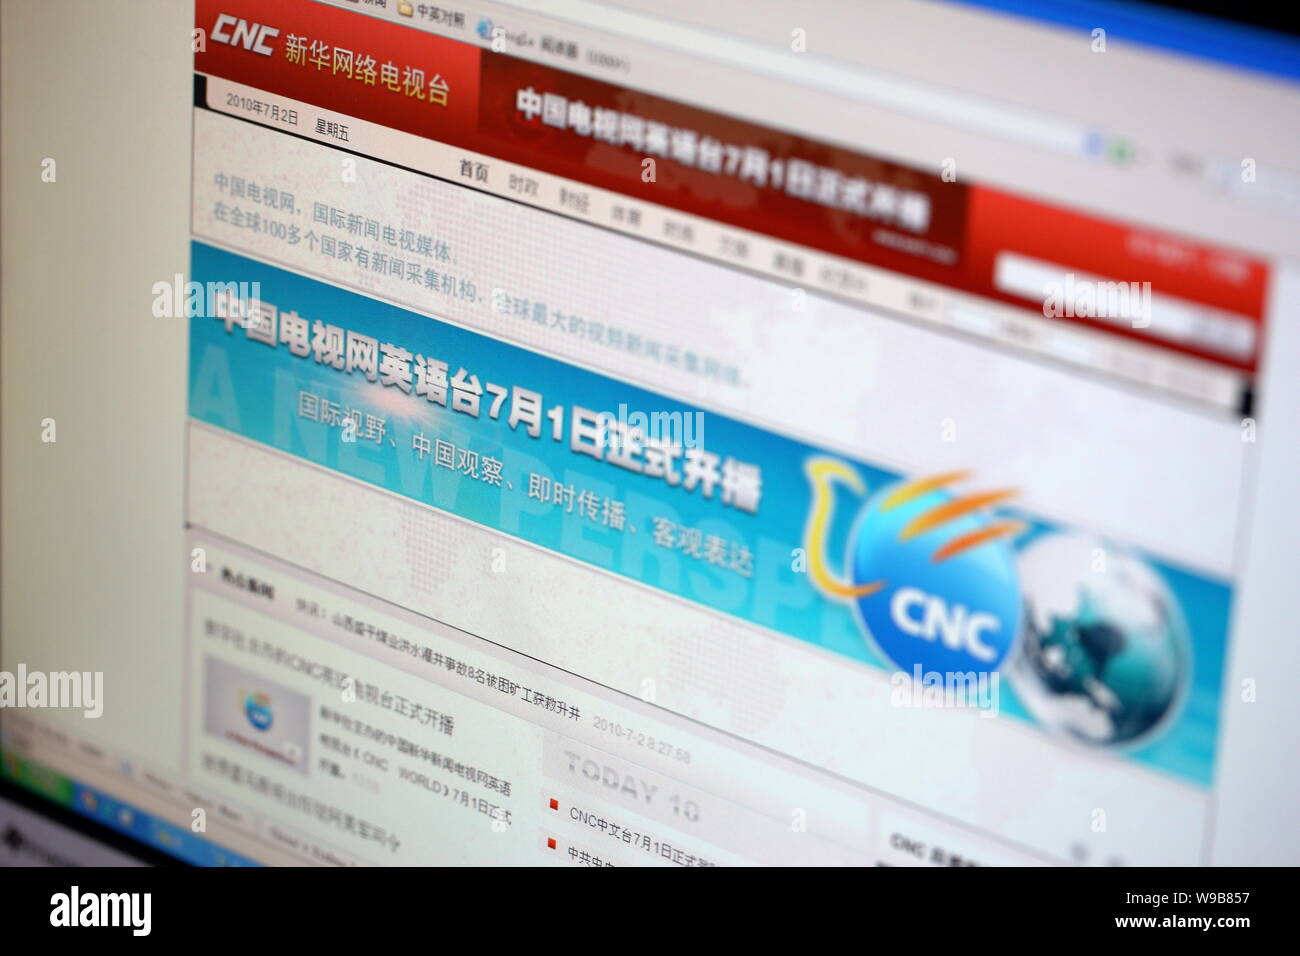 This screen shot taken in Shanghai, China on 2 July 2010 shows the ...